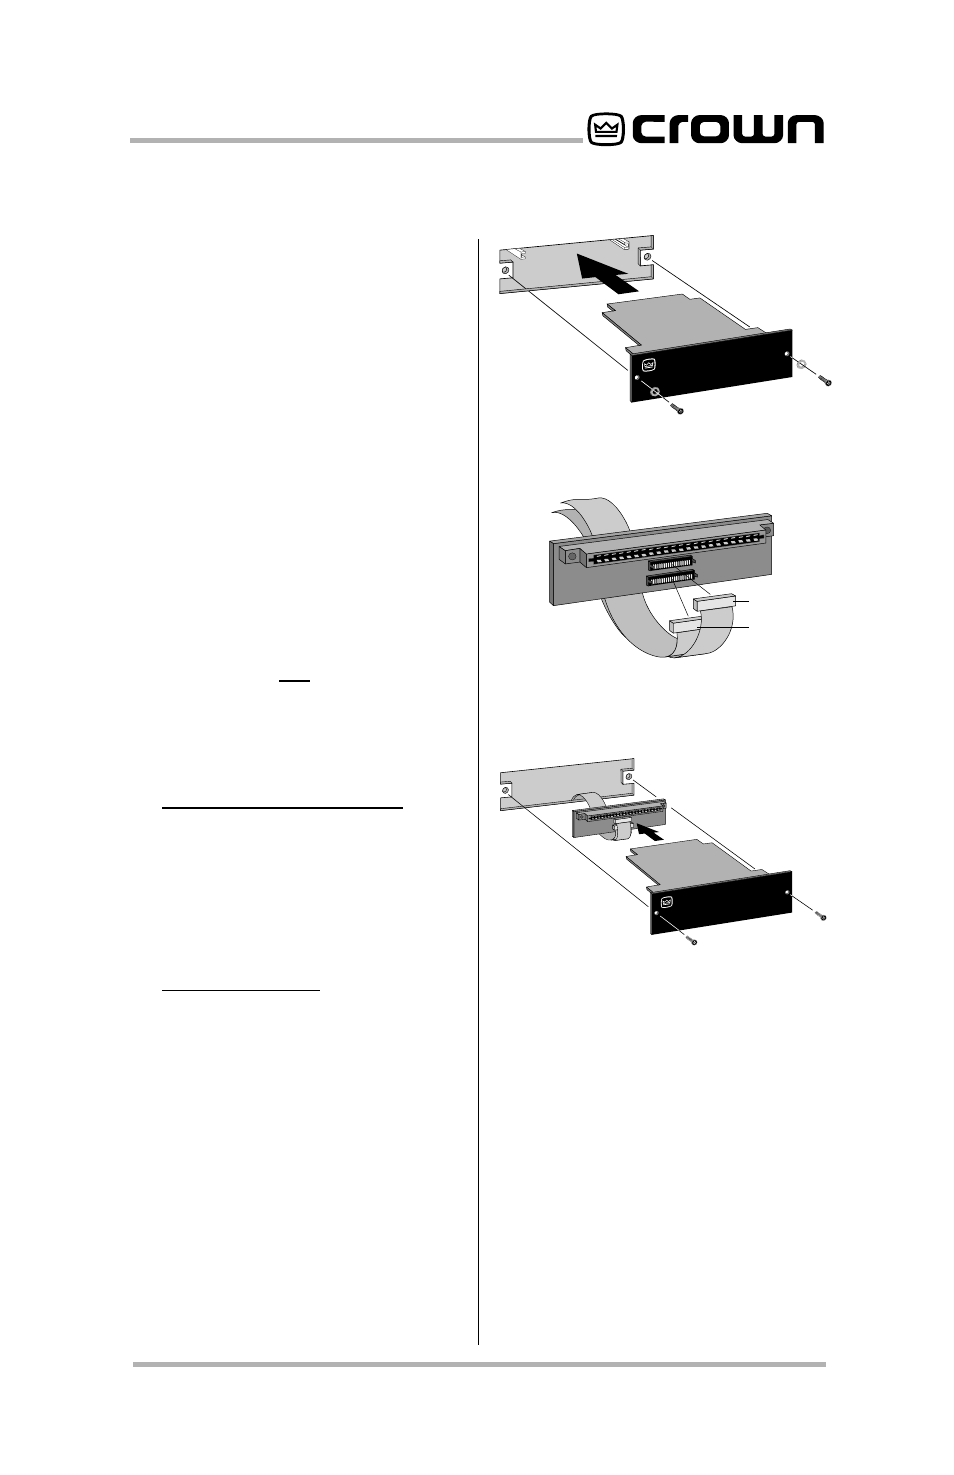 P.i.p, Pip2, Standard p.i.p. amplifiers   Crown Audio P.I.P.-PA User Manual    Page 7 / 20